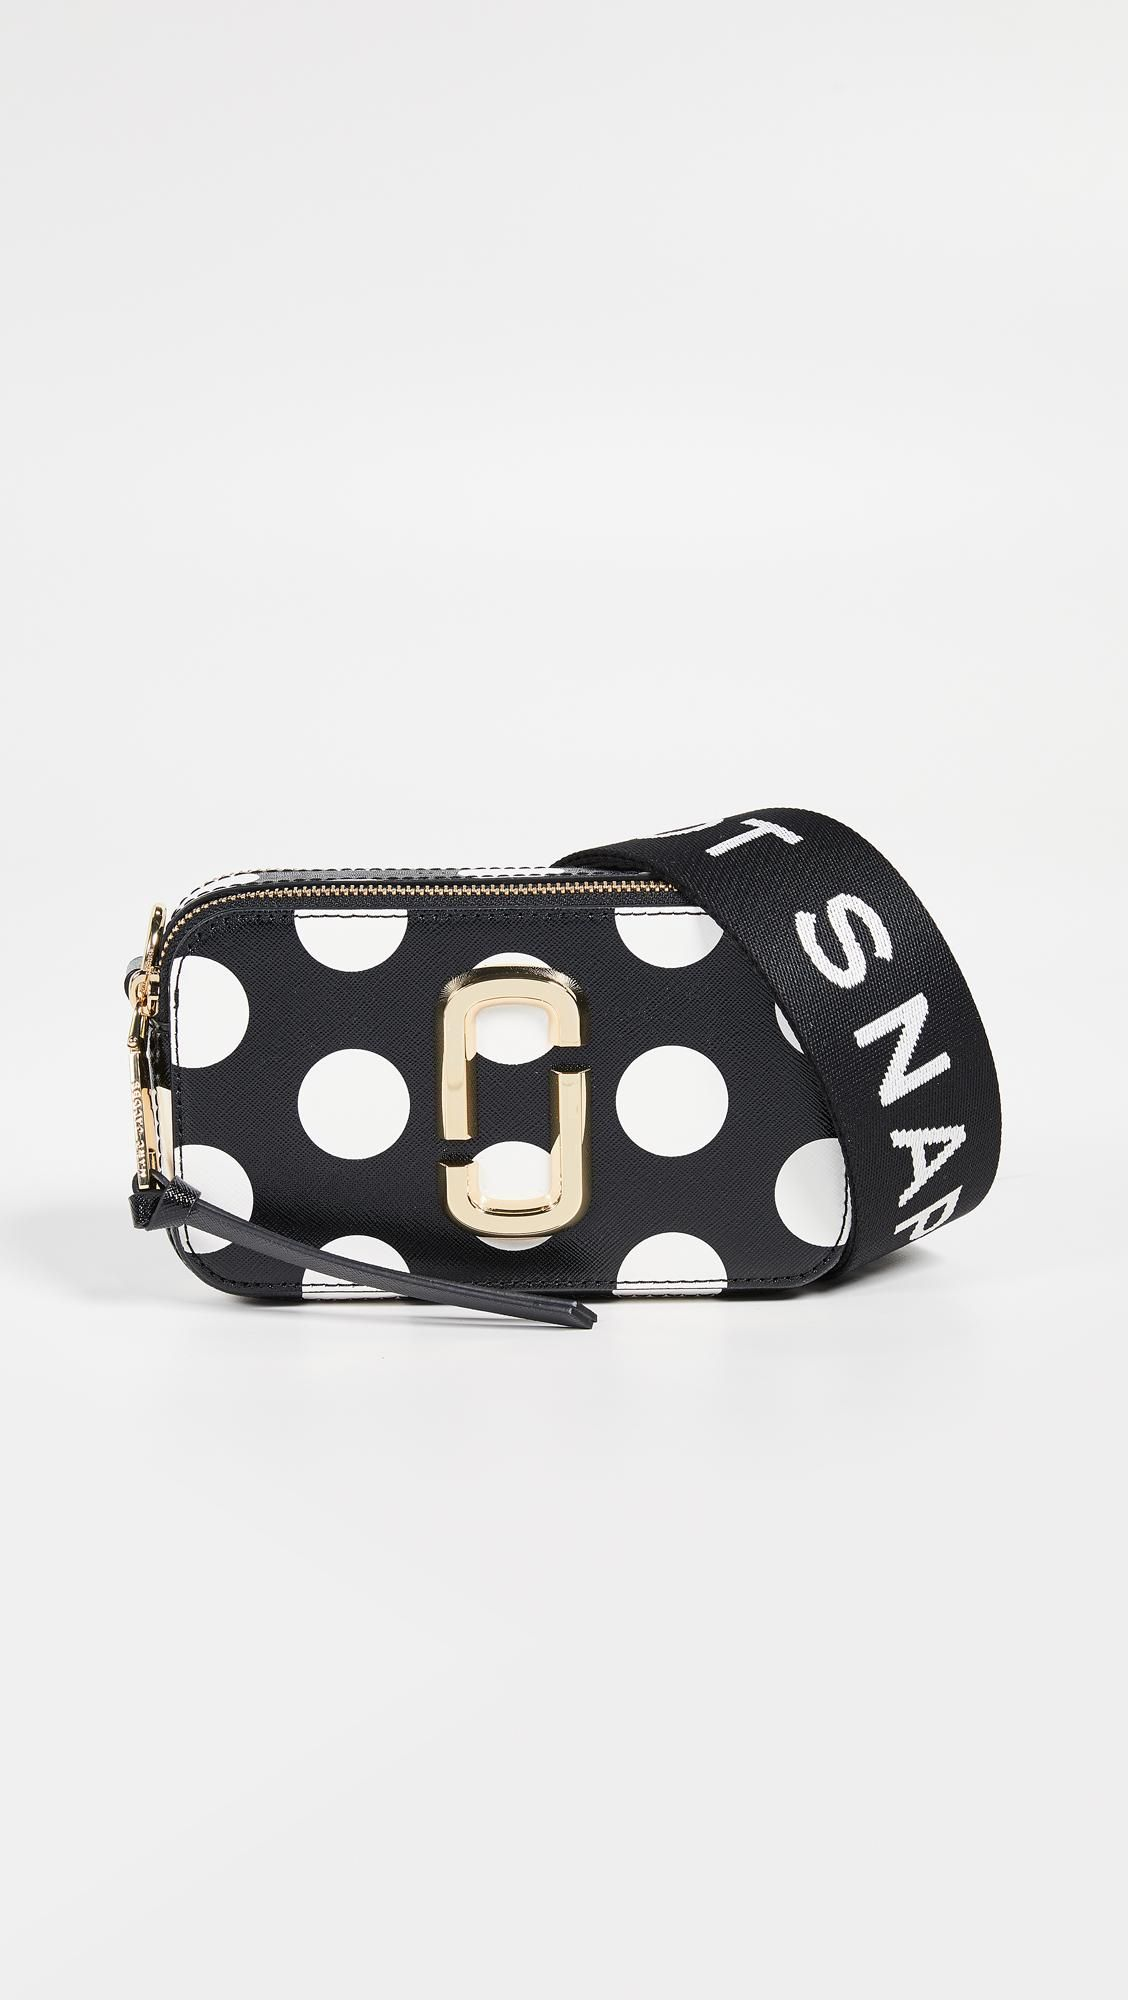 2a58b3b7fa Women's Black And White Dot Small Snapshot Camera Bag in 2019 ...